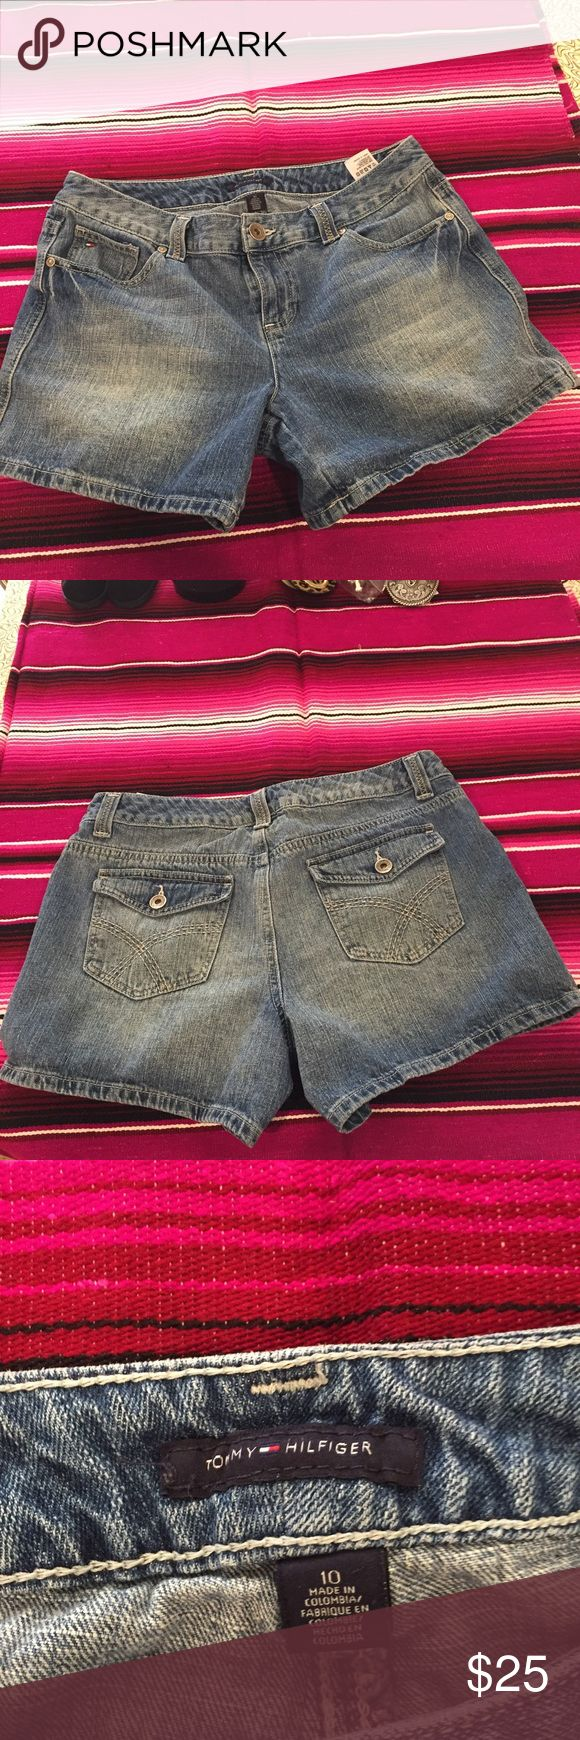 Tommy Hilfiger relaxed fit jean shorts Great condition! Women's Jean shorts. Tommy Hilfiger Shorts Jean Shorts